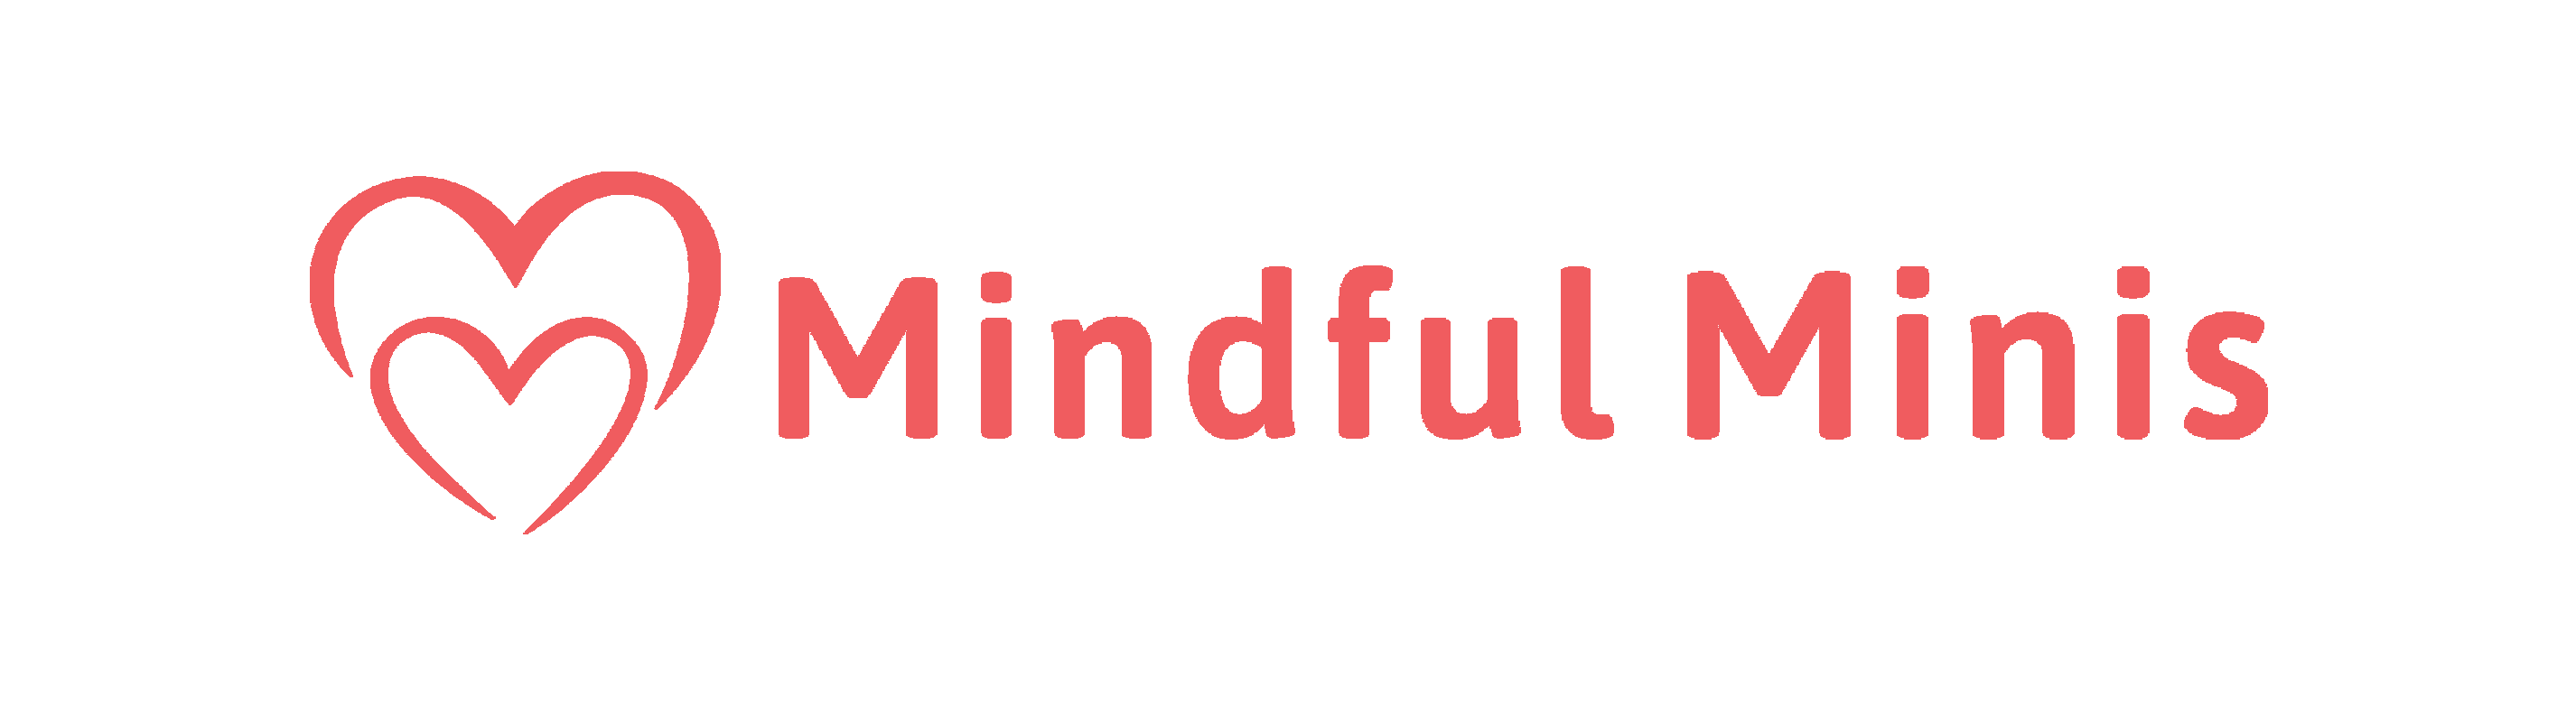 Mindful Minis - The Home of Children's Mindfulness